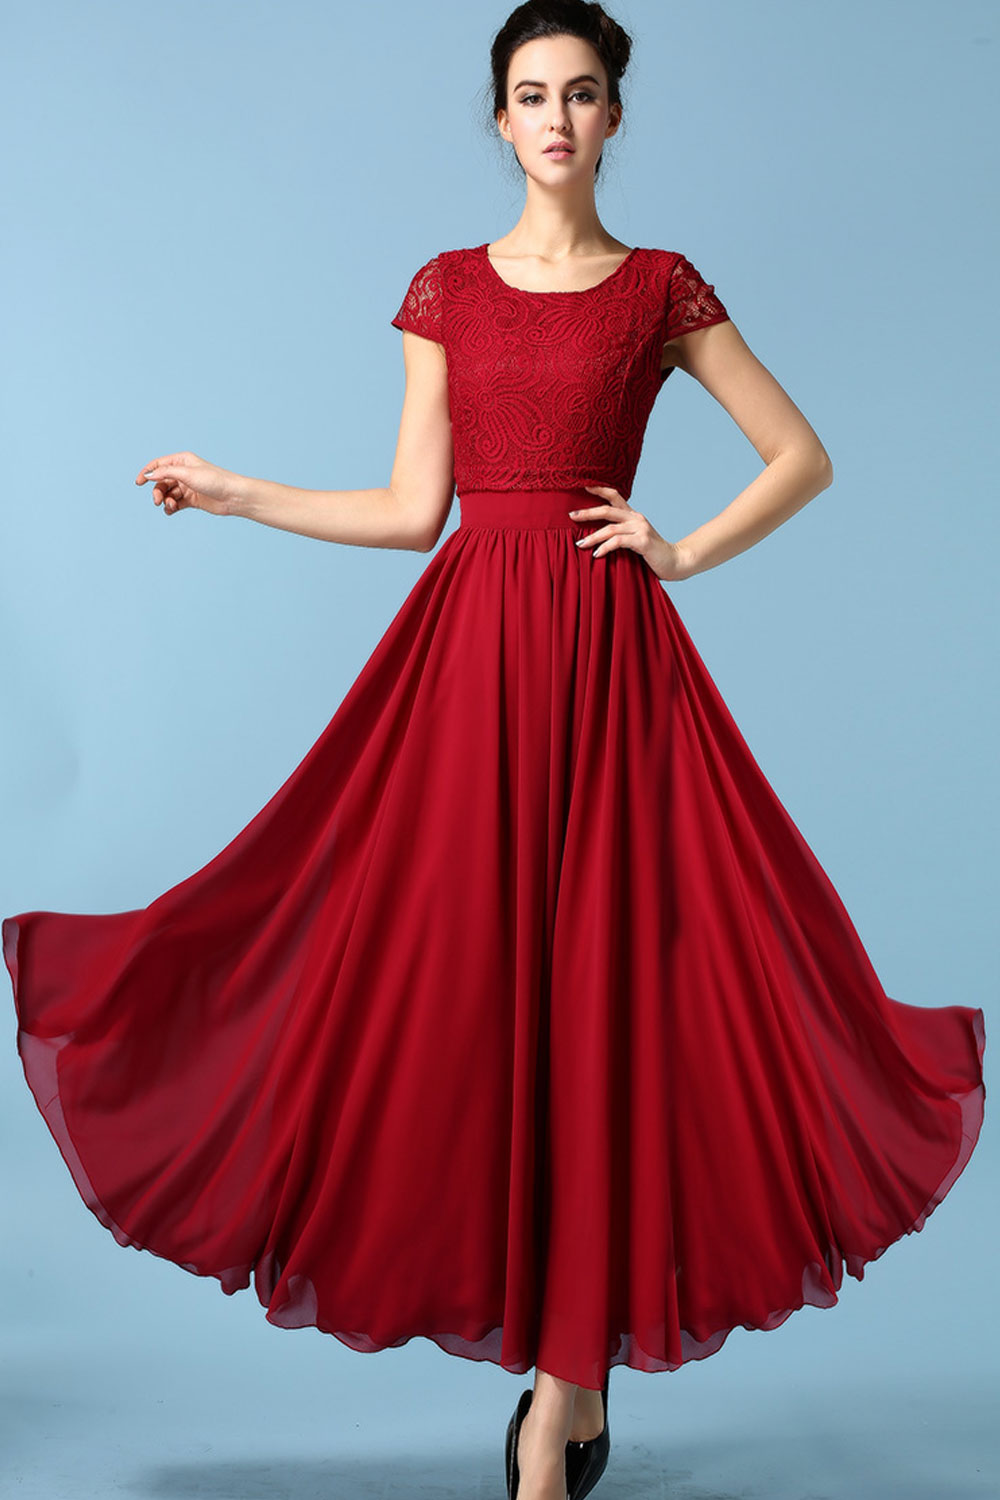 c6bc72af966 WOMENS ELEGANT LONG LENGTH PLEATED SKIRT STYLE DRESS RED – Unomatch Shop